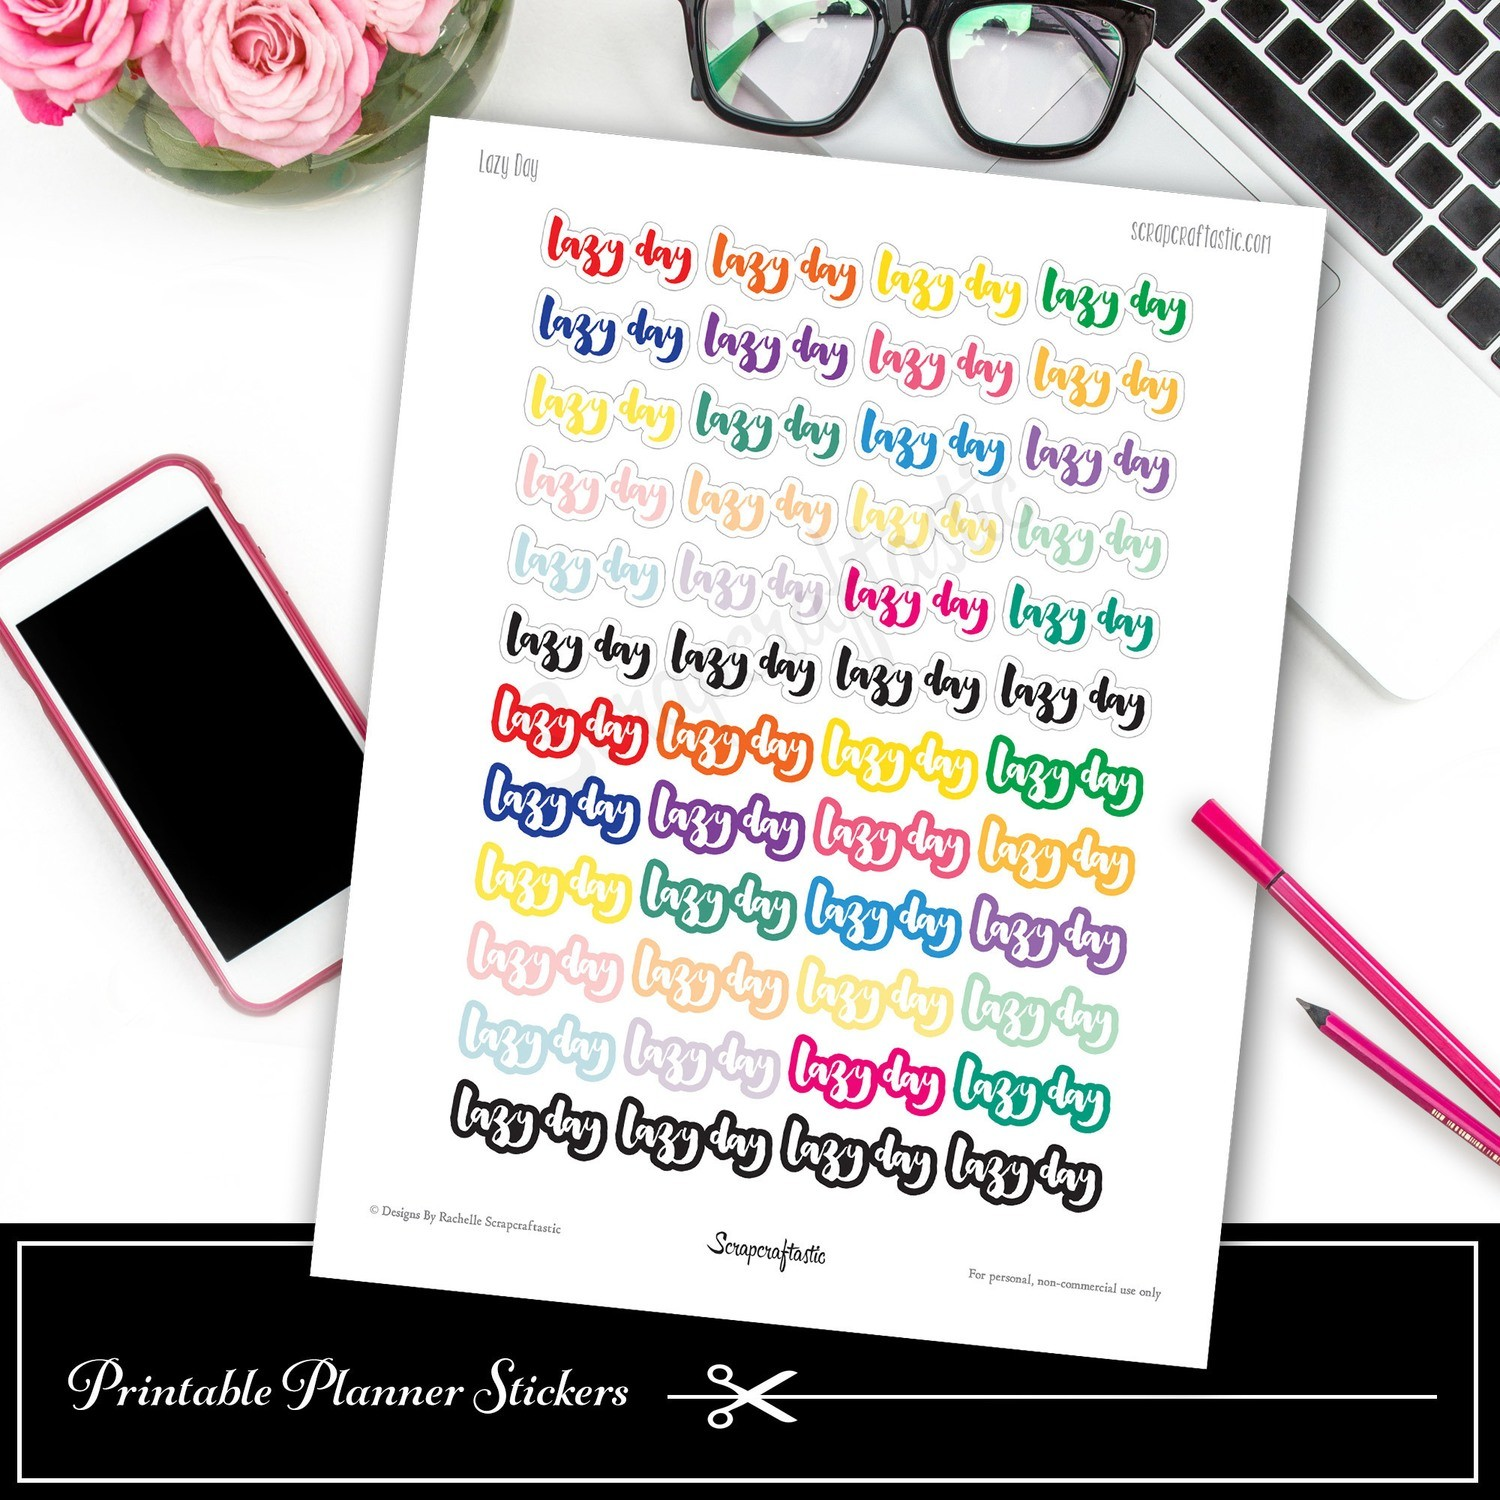 Lazy Day (SayIt) Printable Planner Stickers